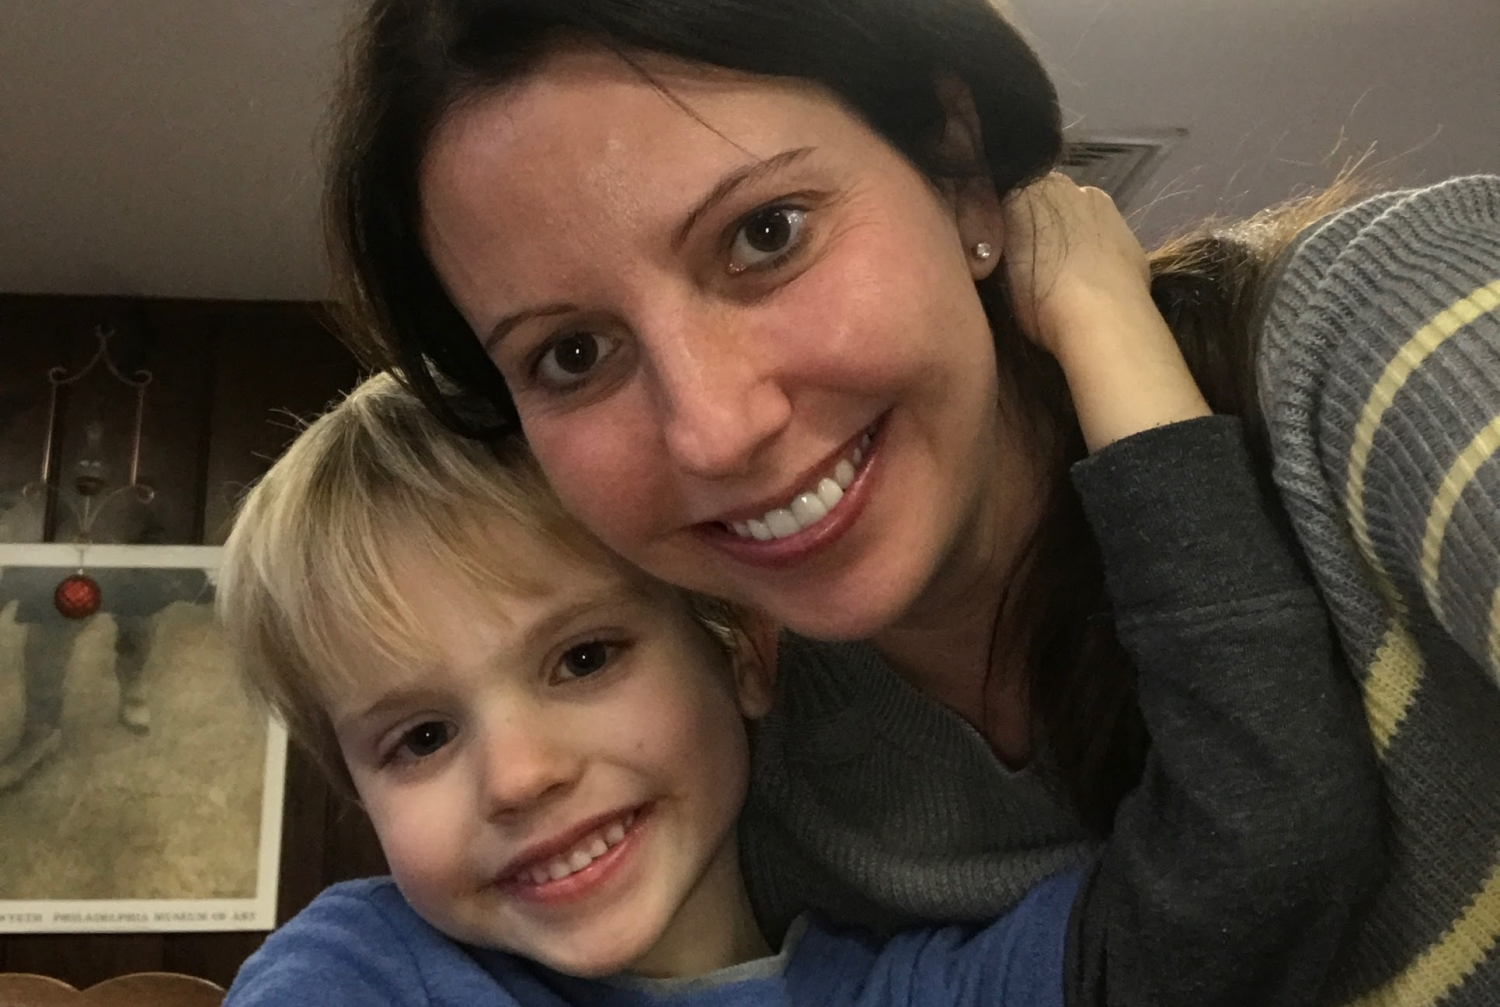 Seven-year-old A.J. Henwood with his mom, Nicole.